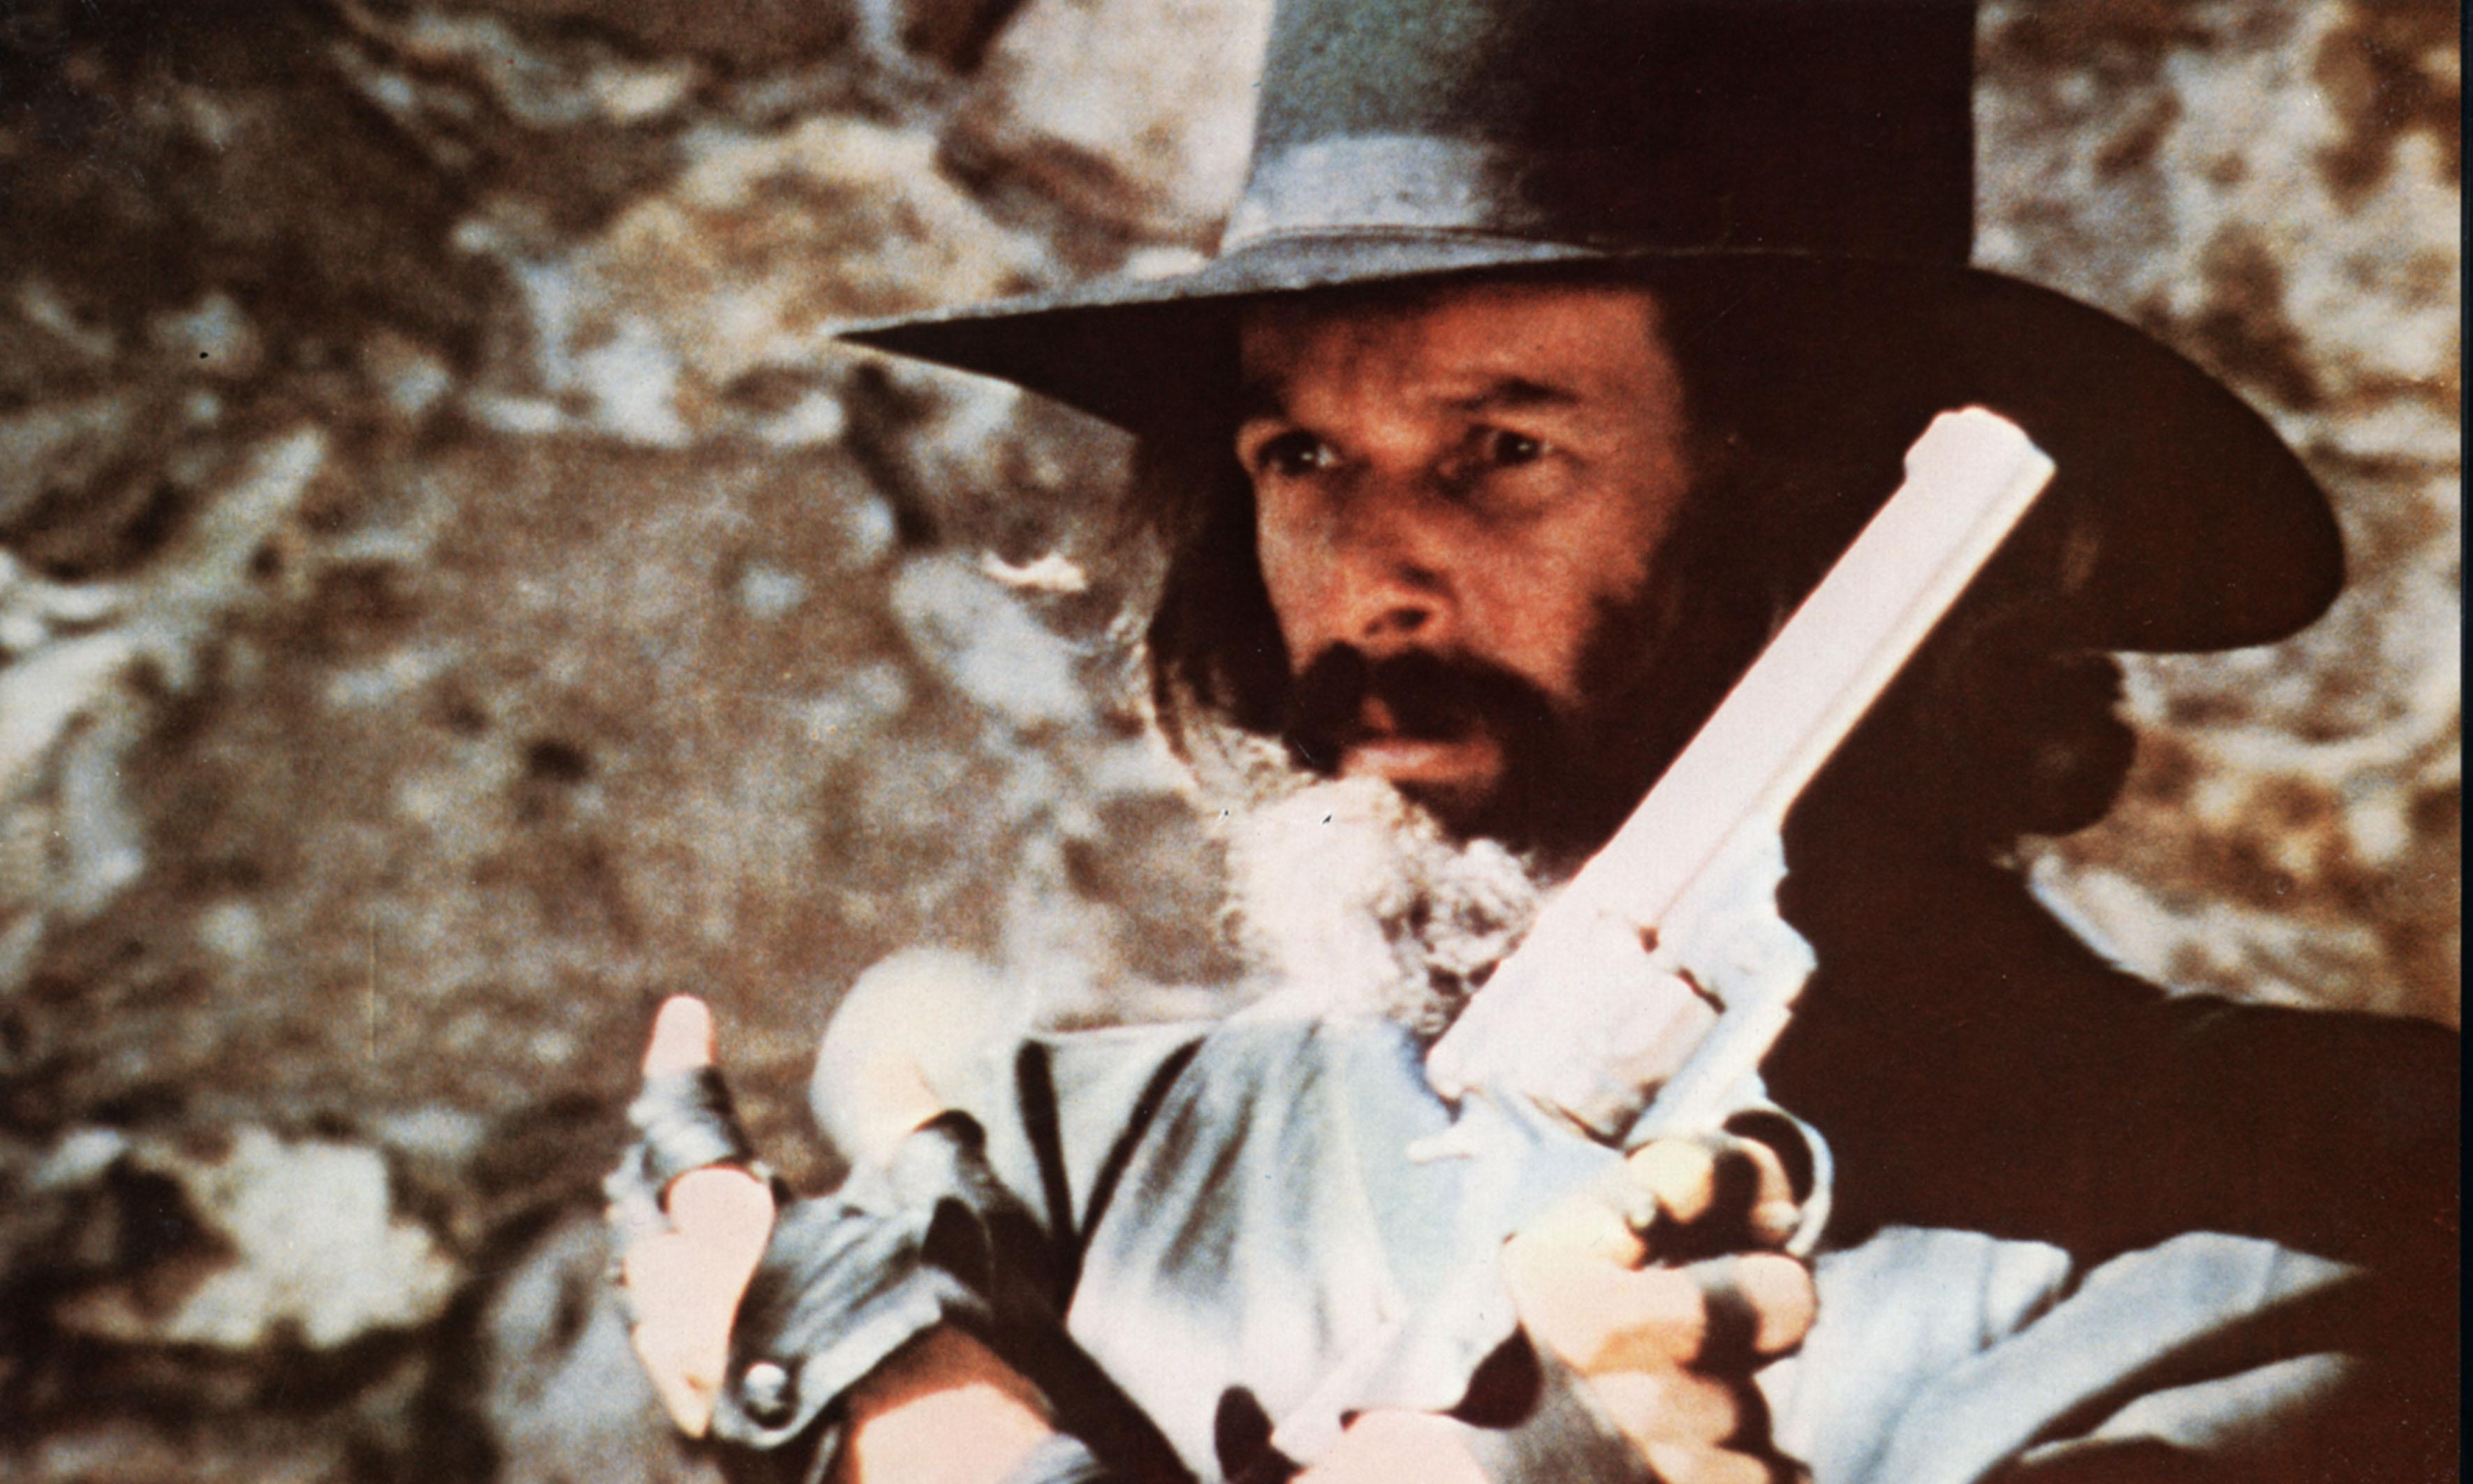 El Topo review – Jodorowsky's weird world of occult psychedelia